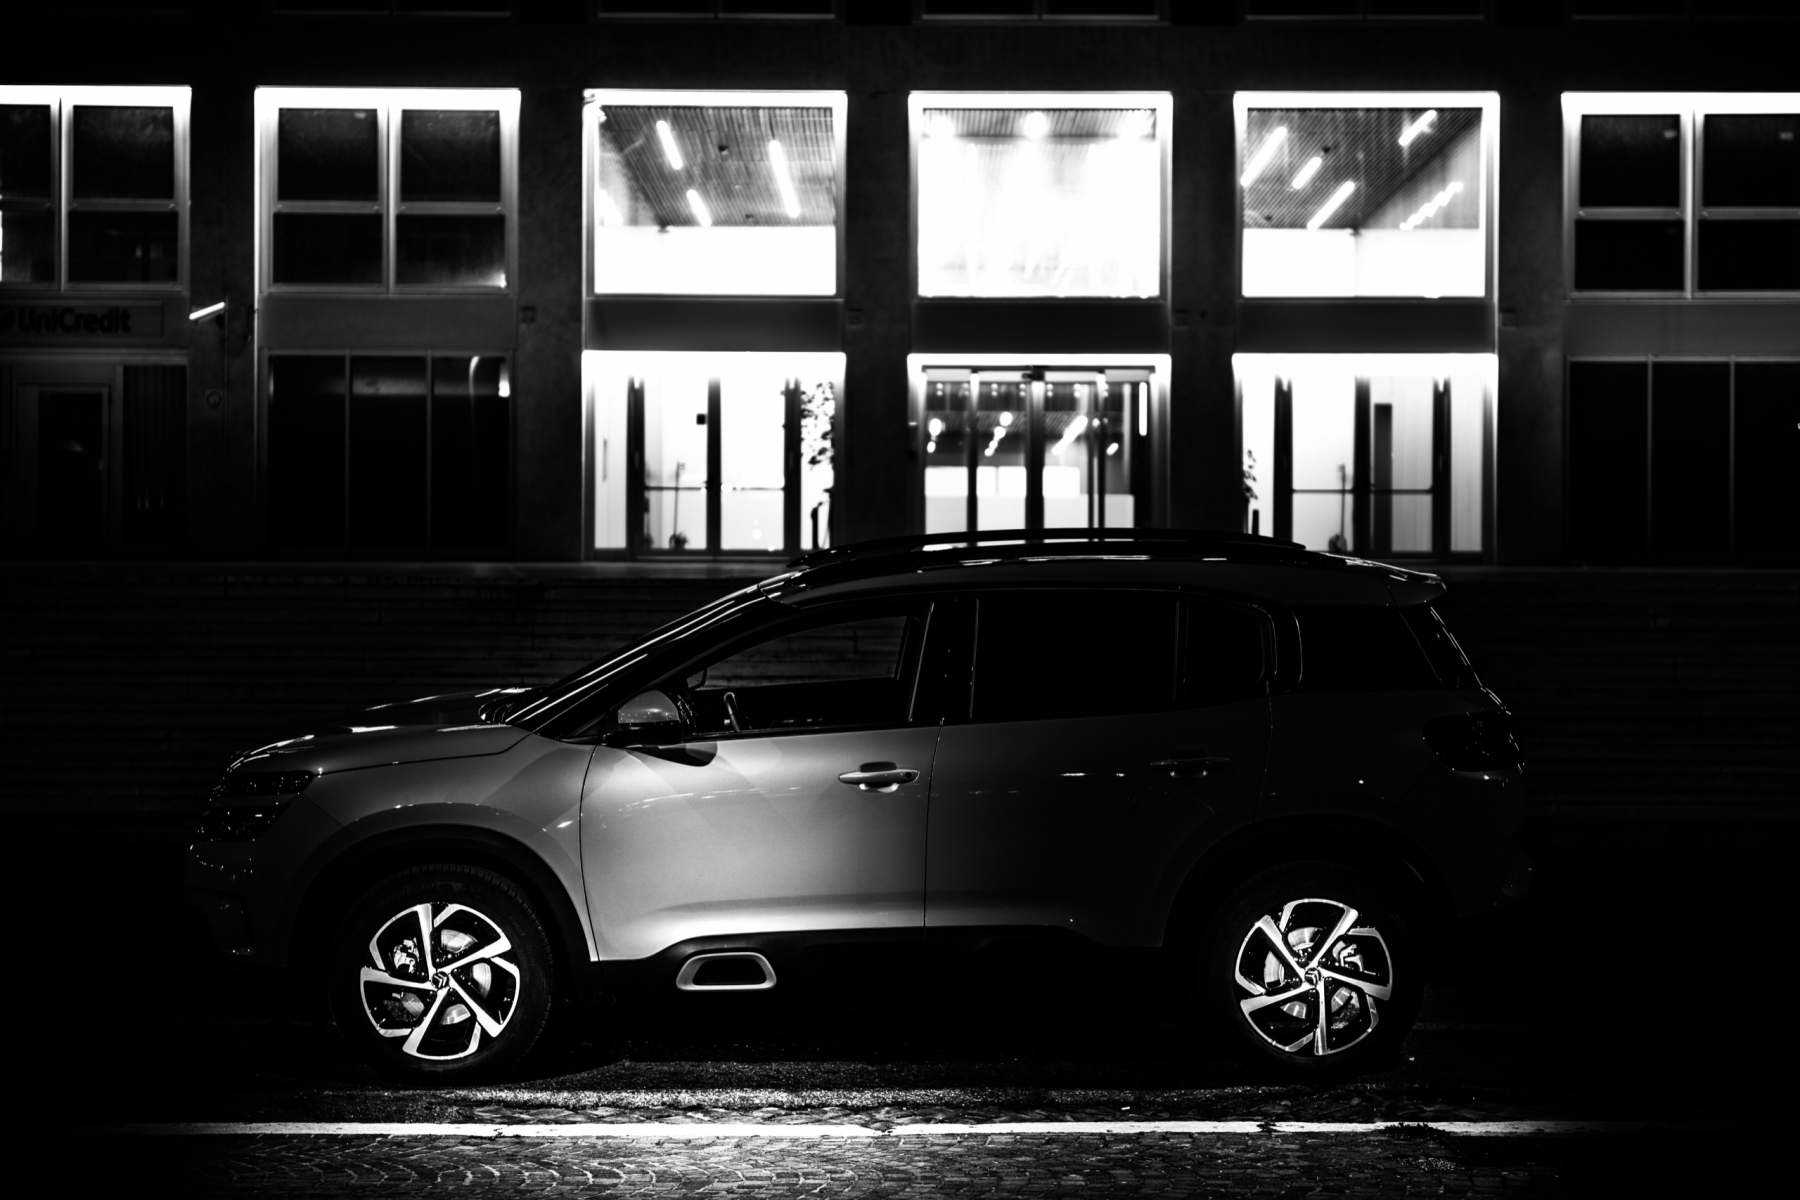 LR5_EDIT-EXPORT_CITROEN-C5-AIRCROSS_bn-2